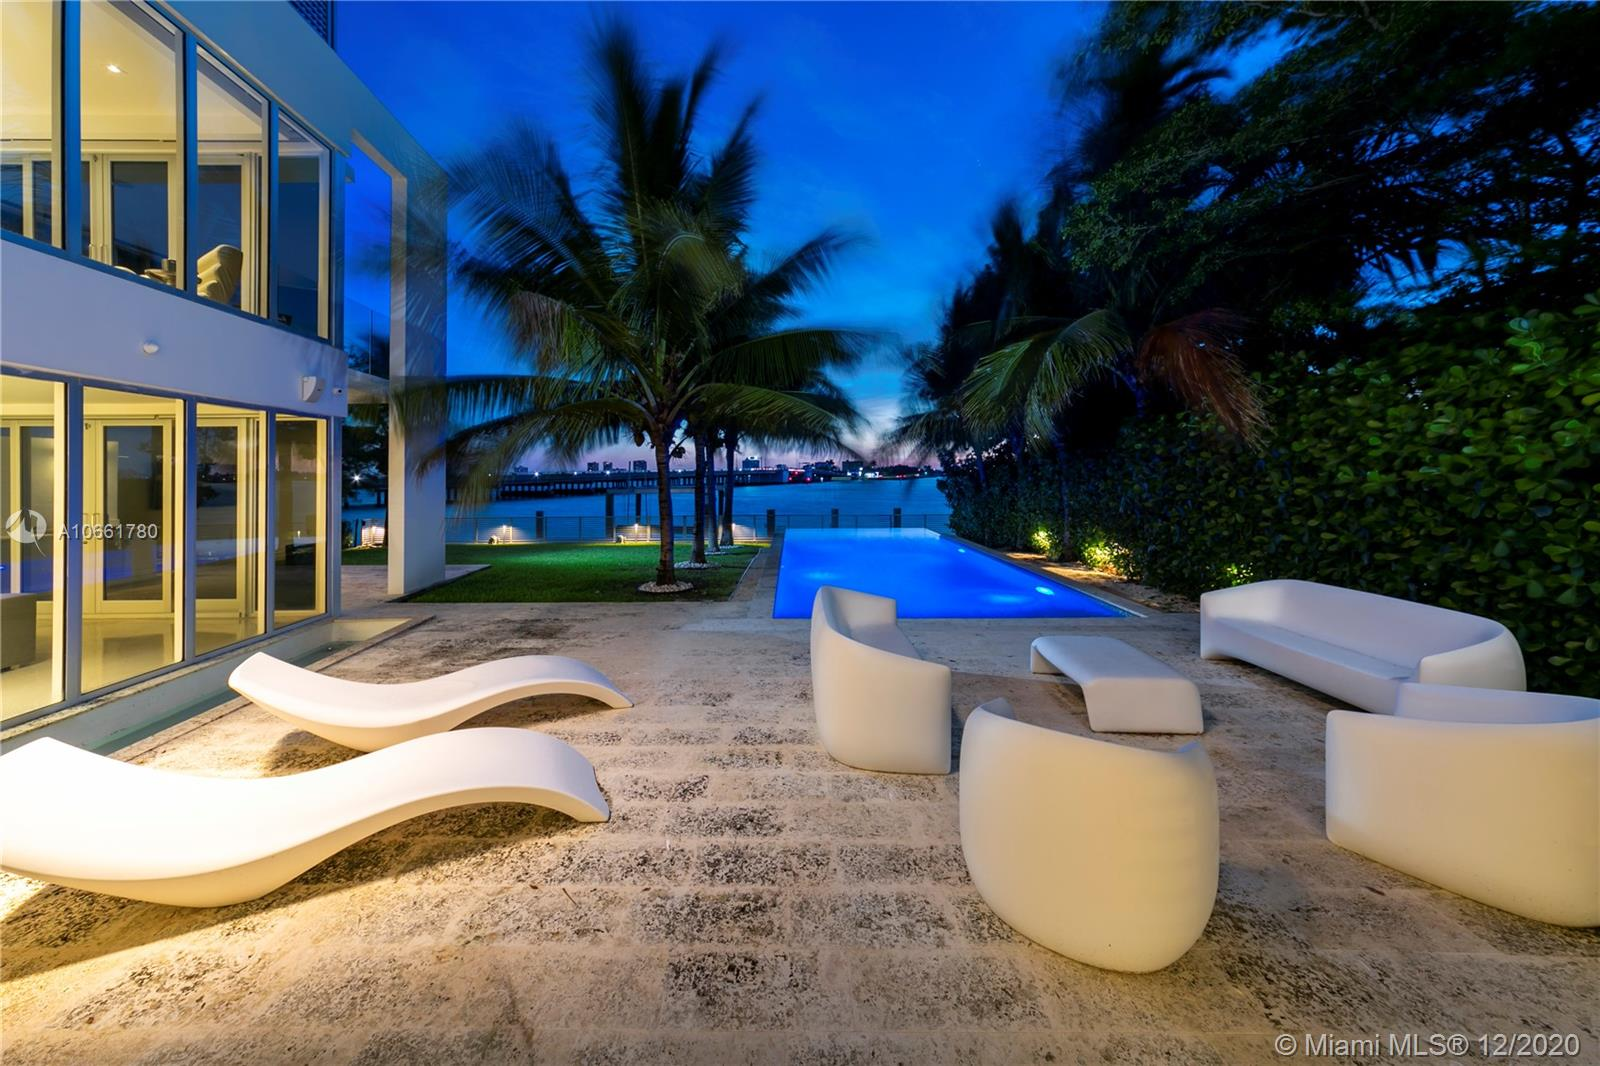 This stunning new construction (2014) masterpiece was conceptualized and brought to life by world-renowned architect Luis Revuelta and is nestled on the coveted west side of Bay Harbour Islands. Boasting wide bay views from multiple rooms in the house, 9710 West Broadview was built as a modern day fortress - sitting 13' above sea level. Some of the features of the home are 18 ft. ceilings in the great room, a huge waterfront rooftop terrace with a bar, a Lutron smart home throughout the residence, a salt water infinity pool, a summer kitchen, a backup gas generator, a two-car garage with high ceilings for storage, and much more...